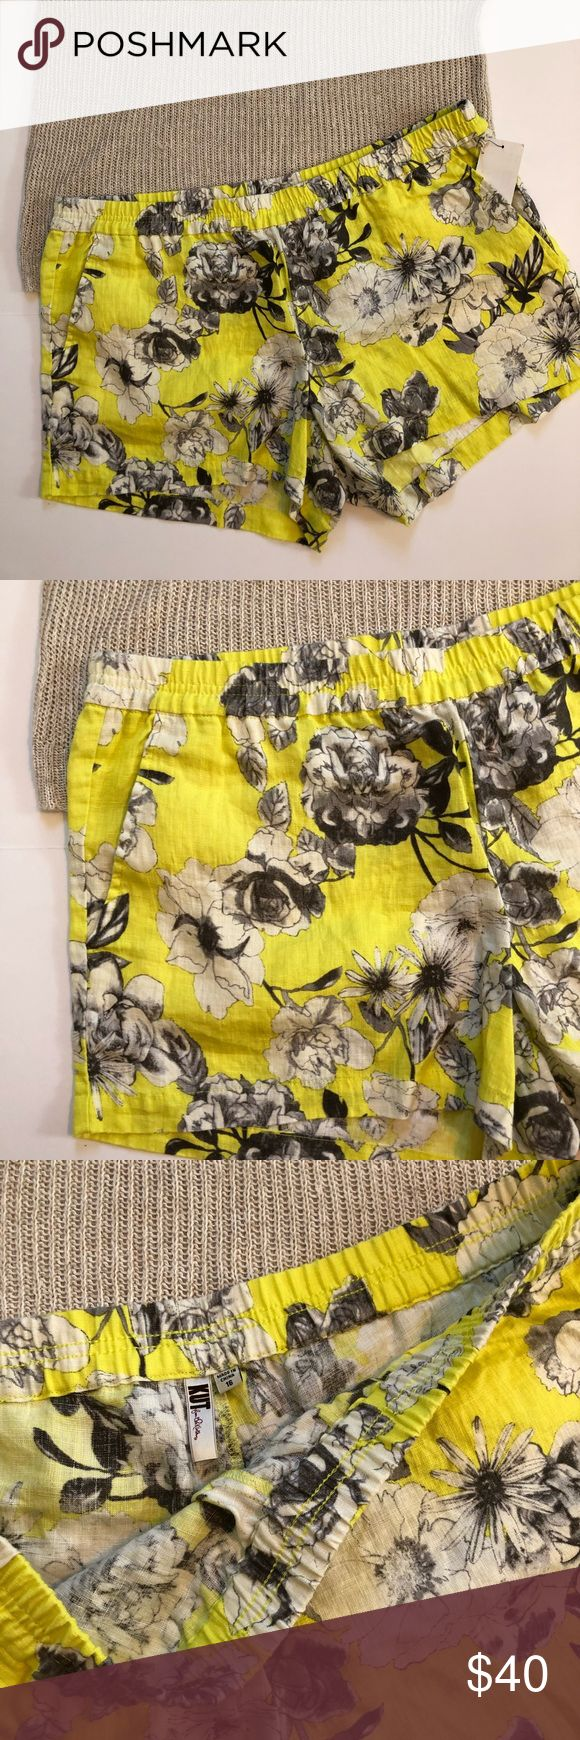 Floral elastic waist shorts Cream and tan floral on yellow. Elastic waist. Pockets. Brand new with tags. Can fit an XL or XXL. Brand new with tags. Kut from the Kloth Shorts